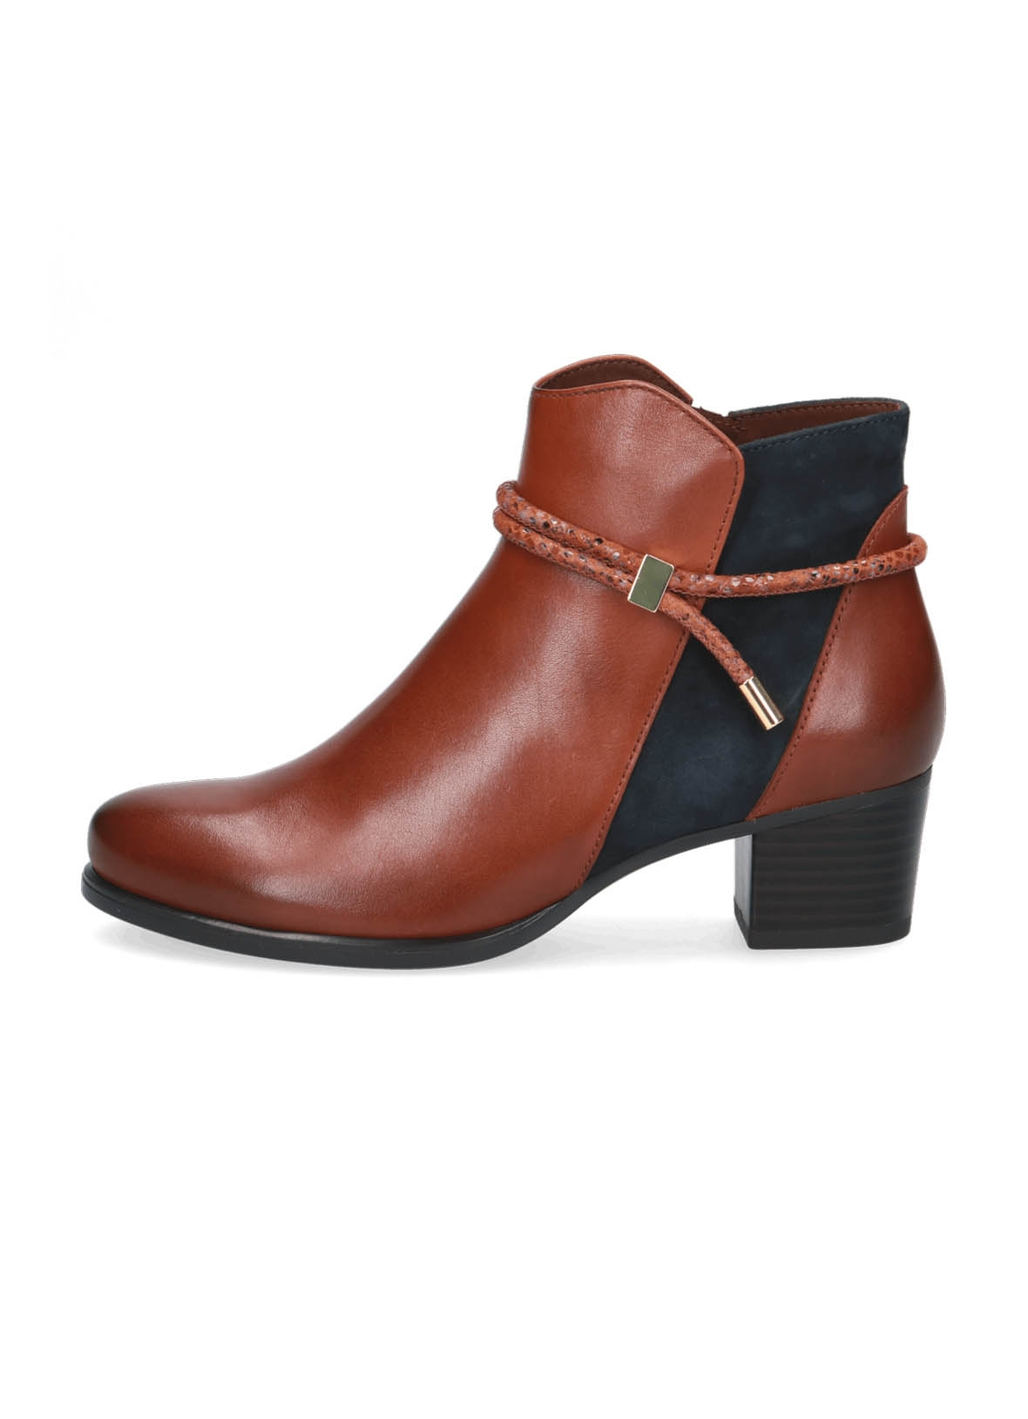 Caprice Mary Leather Ankle Boots in Cognac